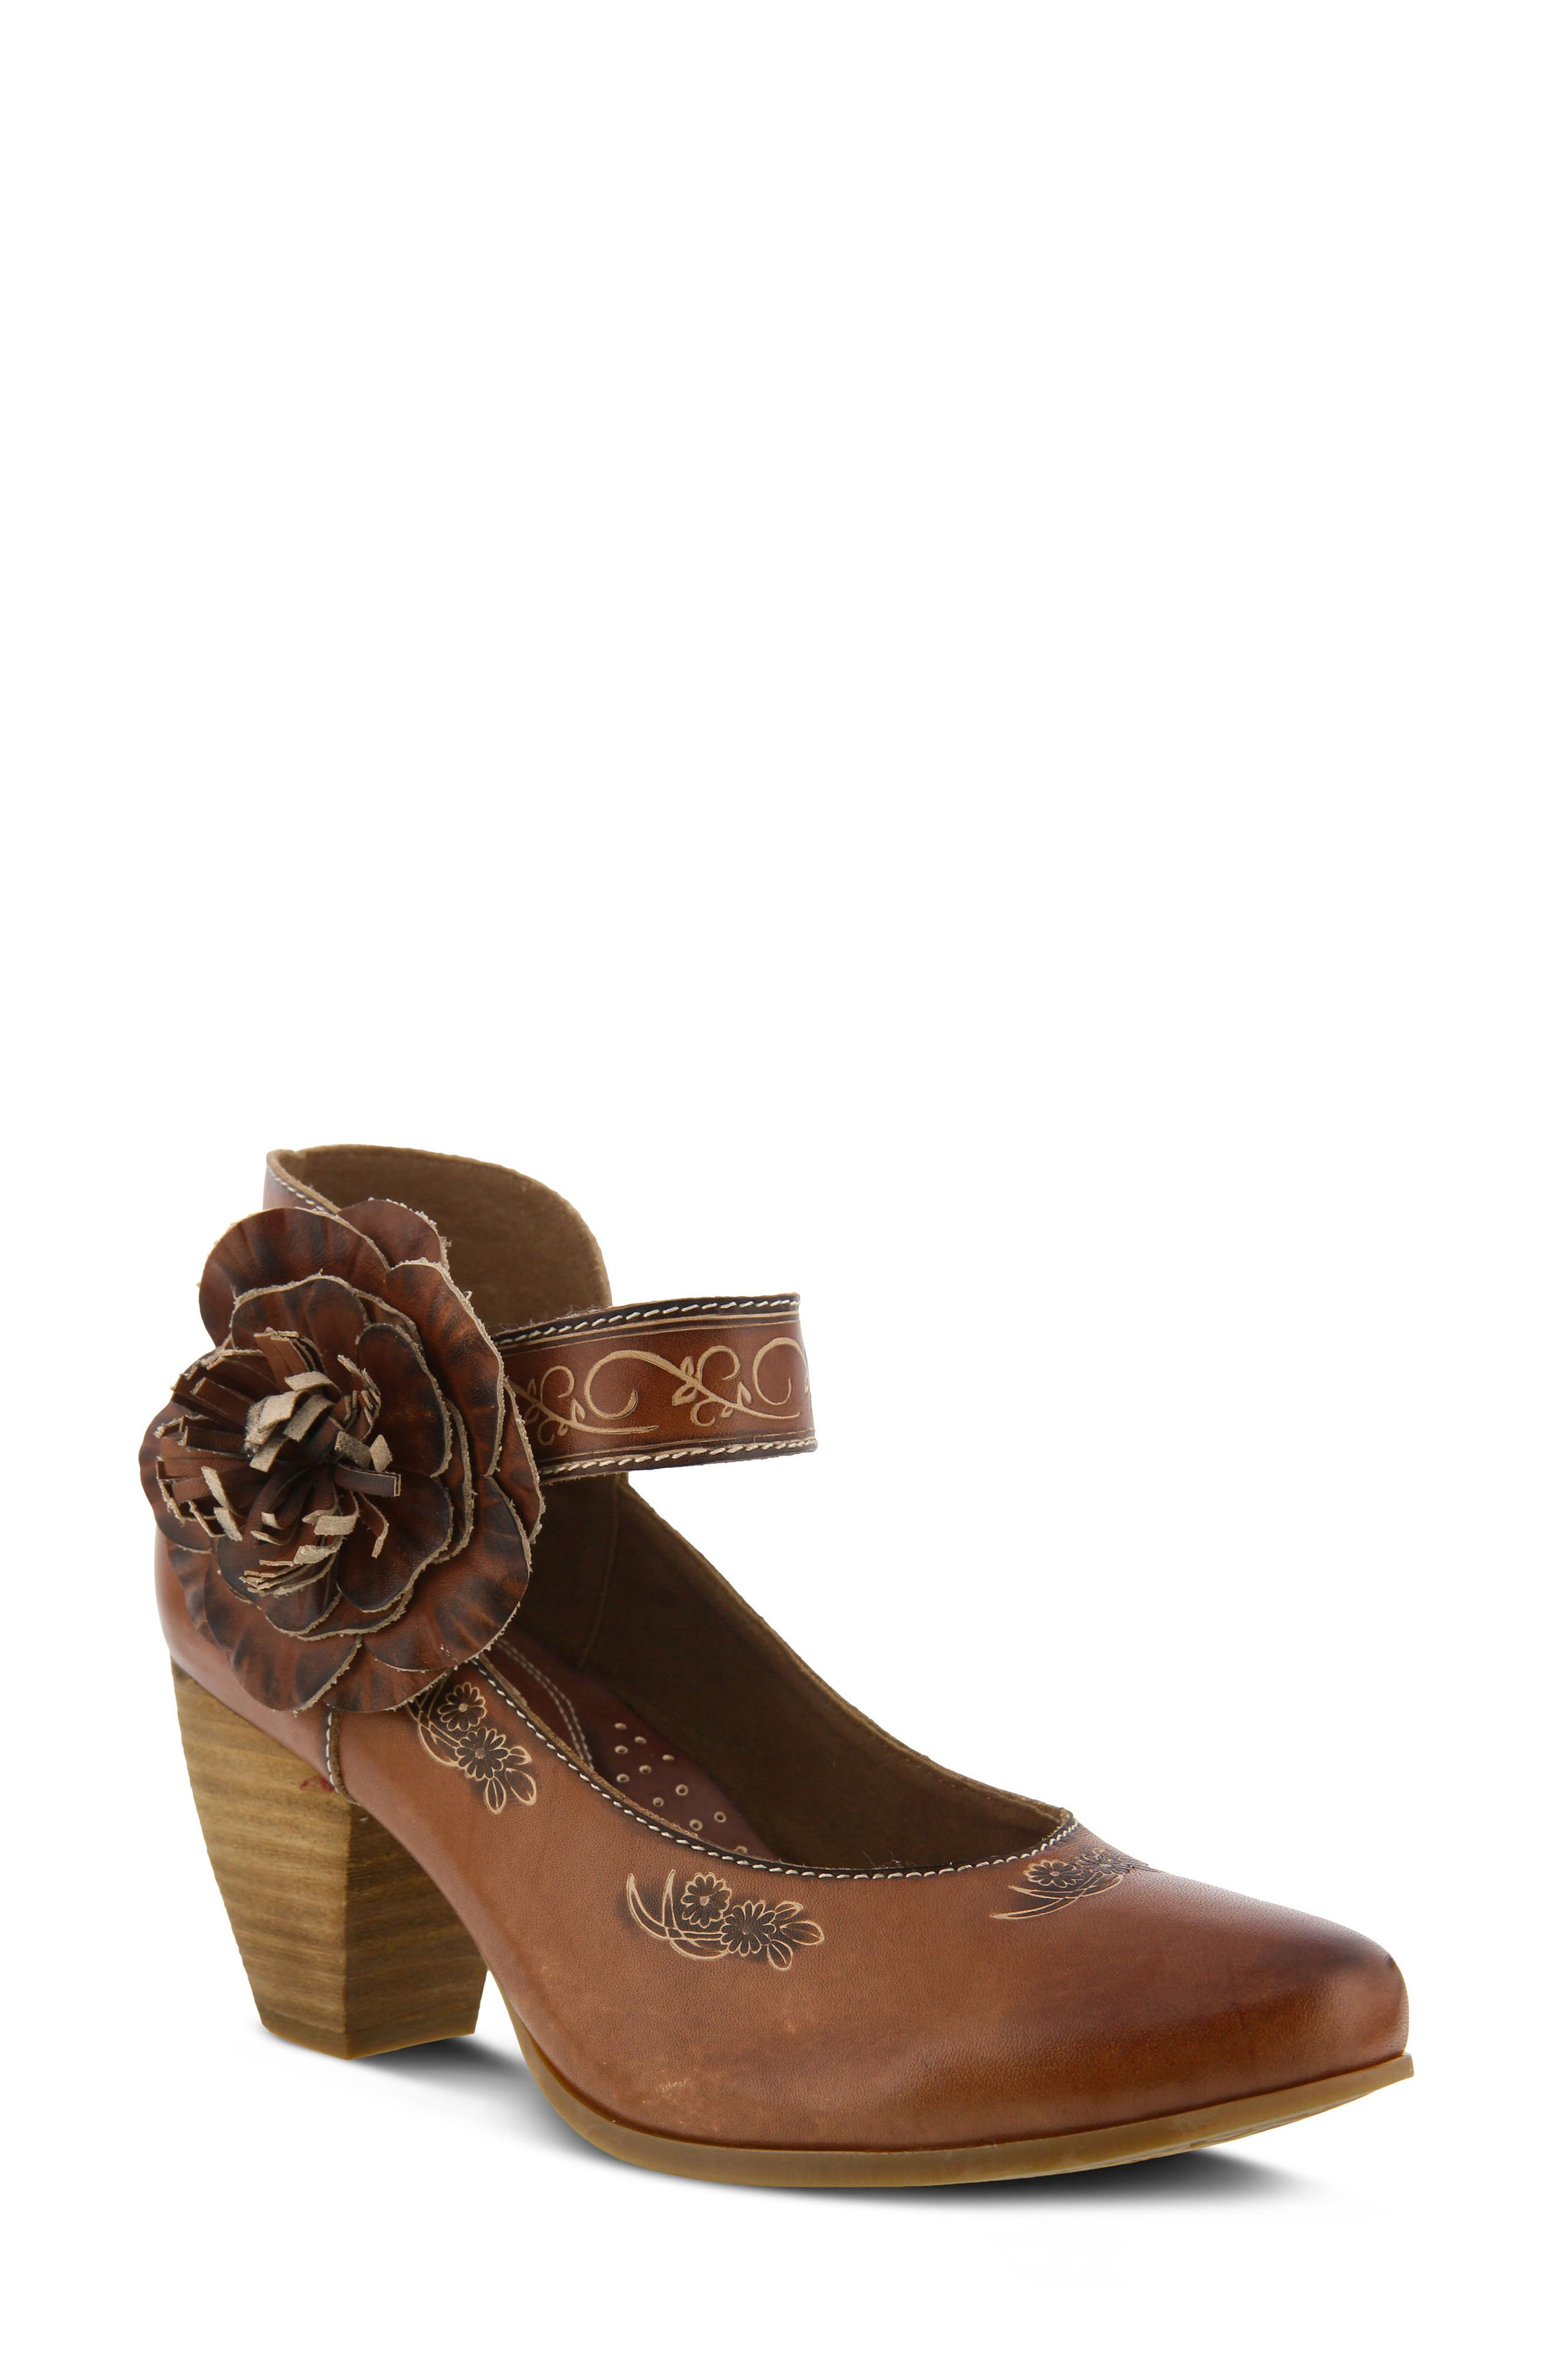 L'Artiste Tosha Pump,                             Main thumbnail 1, color,                             Brown Leather